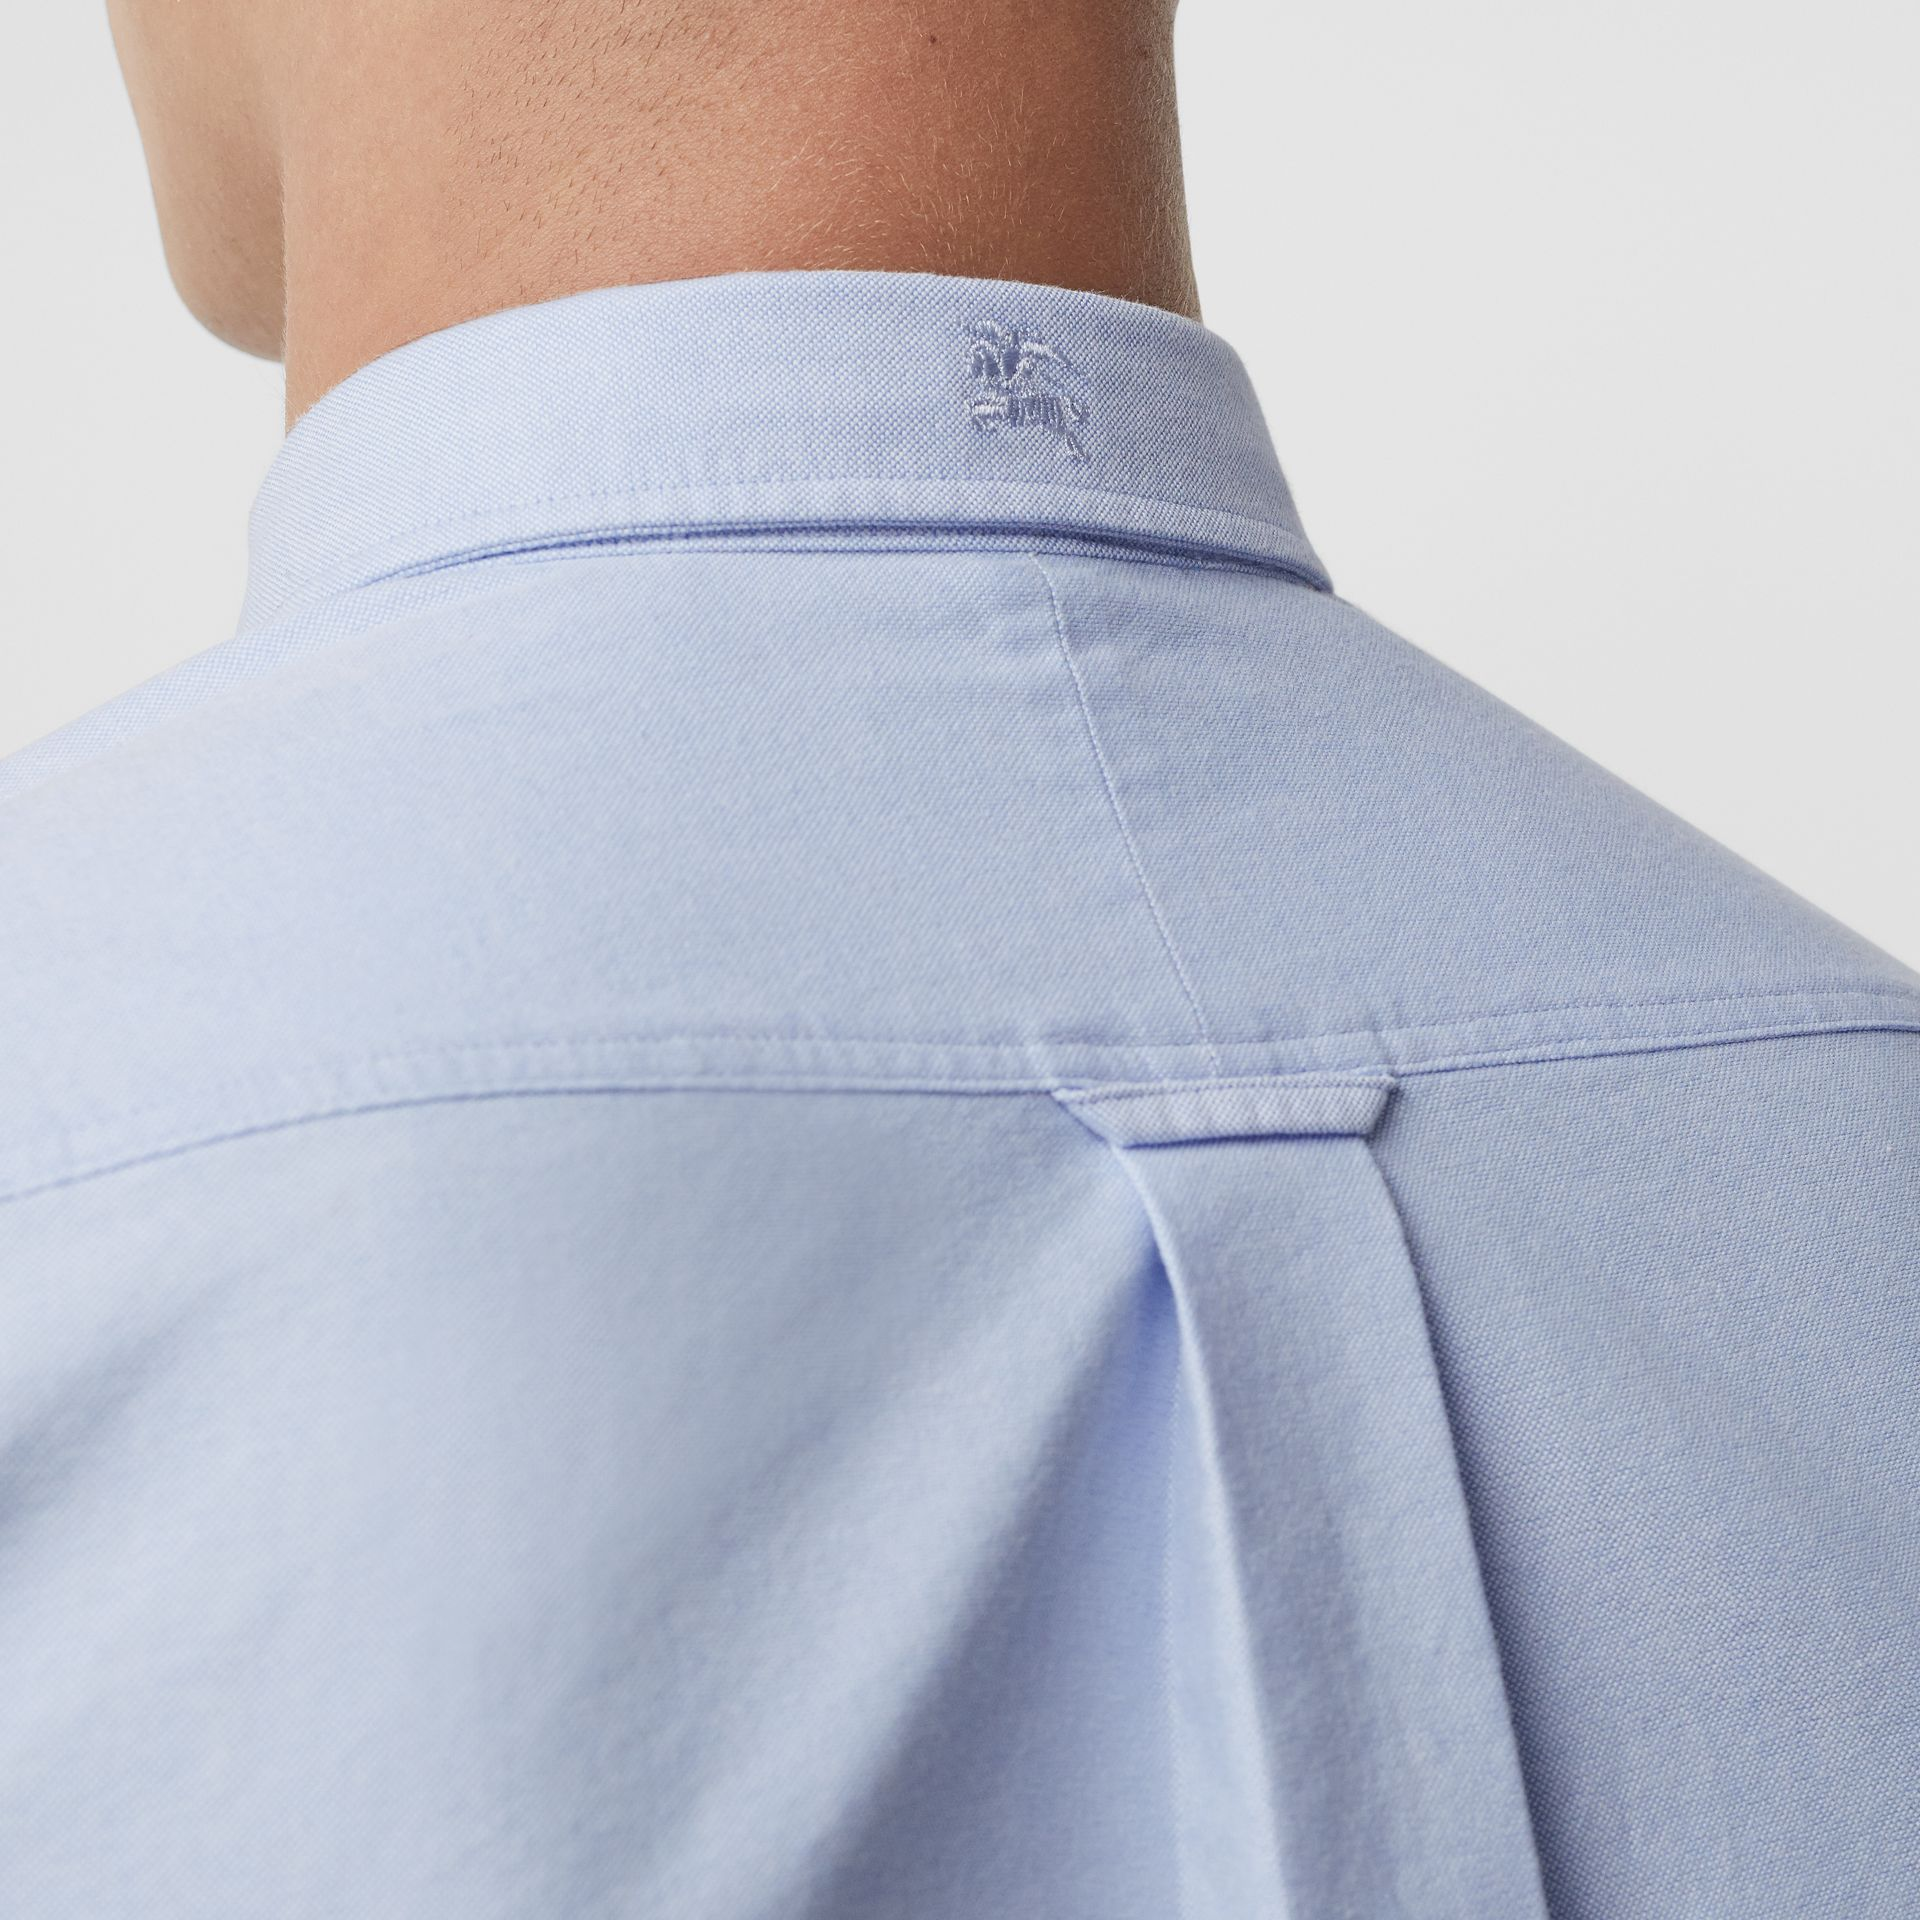 Check Cuff Cotton Oxford Shirt in Cornflower Blue - Men | Burberry Singapore - gallery image 4